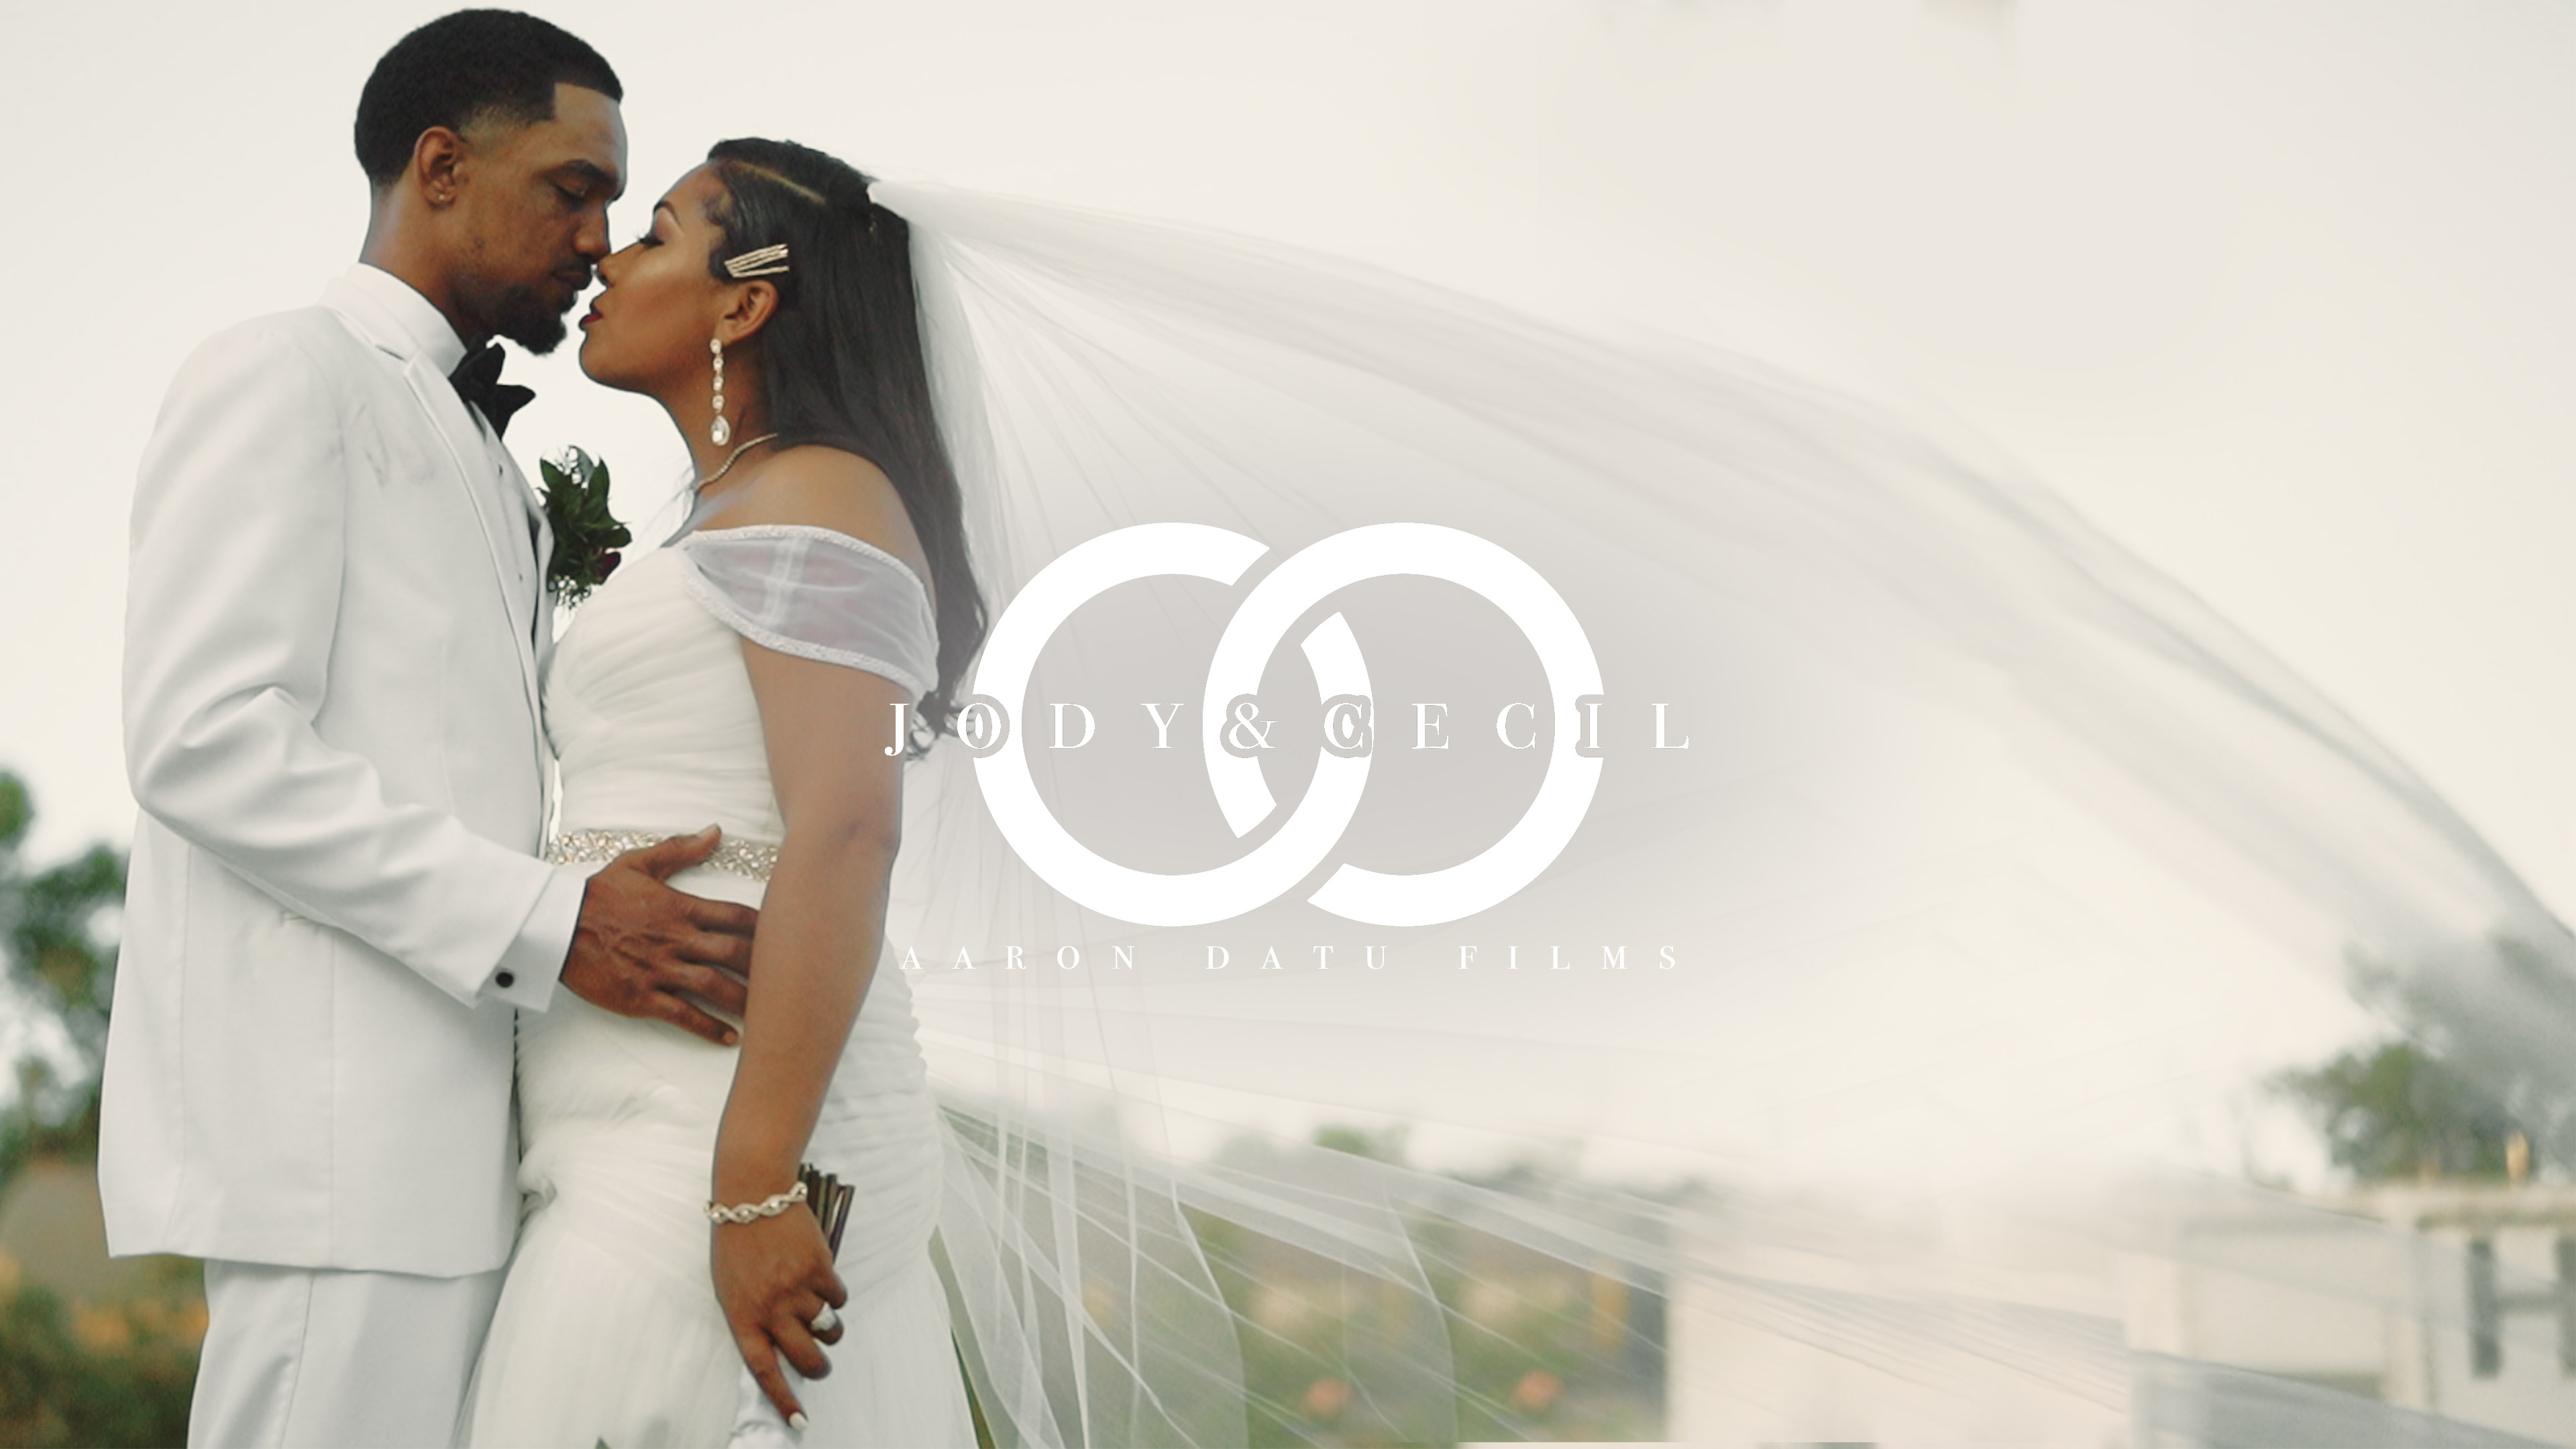 Jody + Cecil | Wichita, Kansas | The Hudson